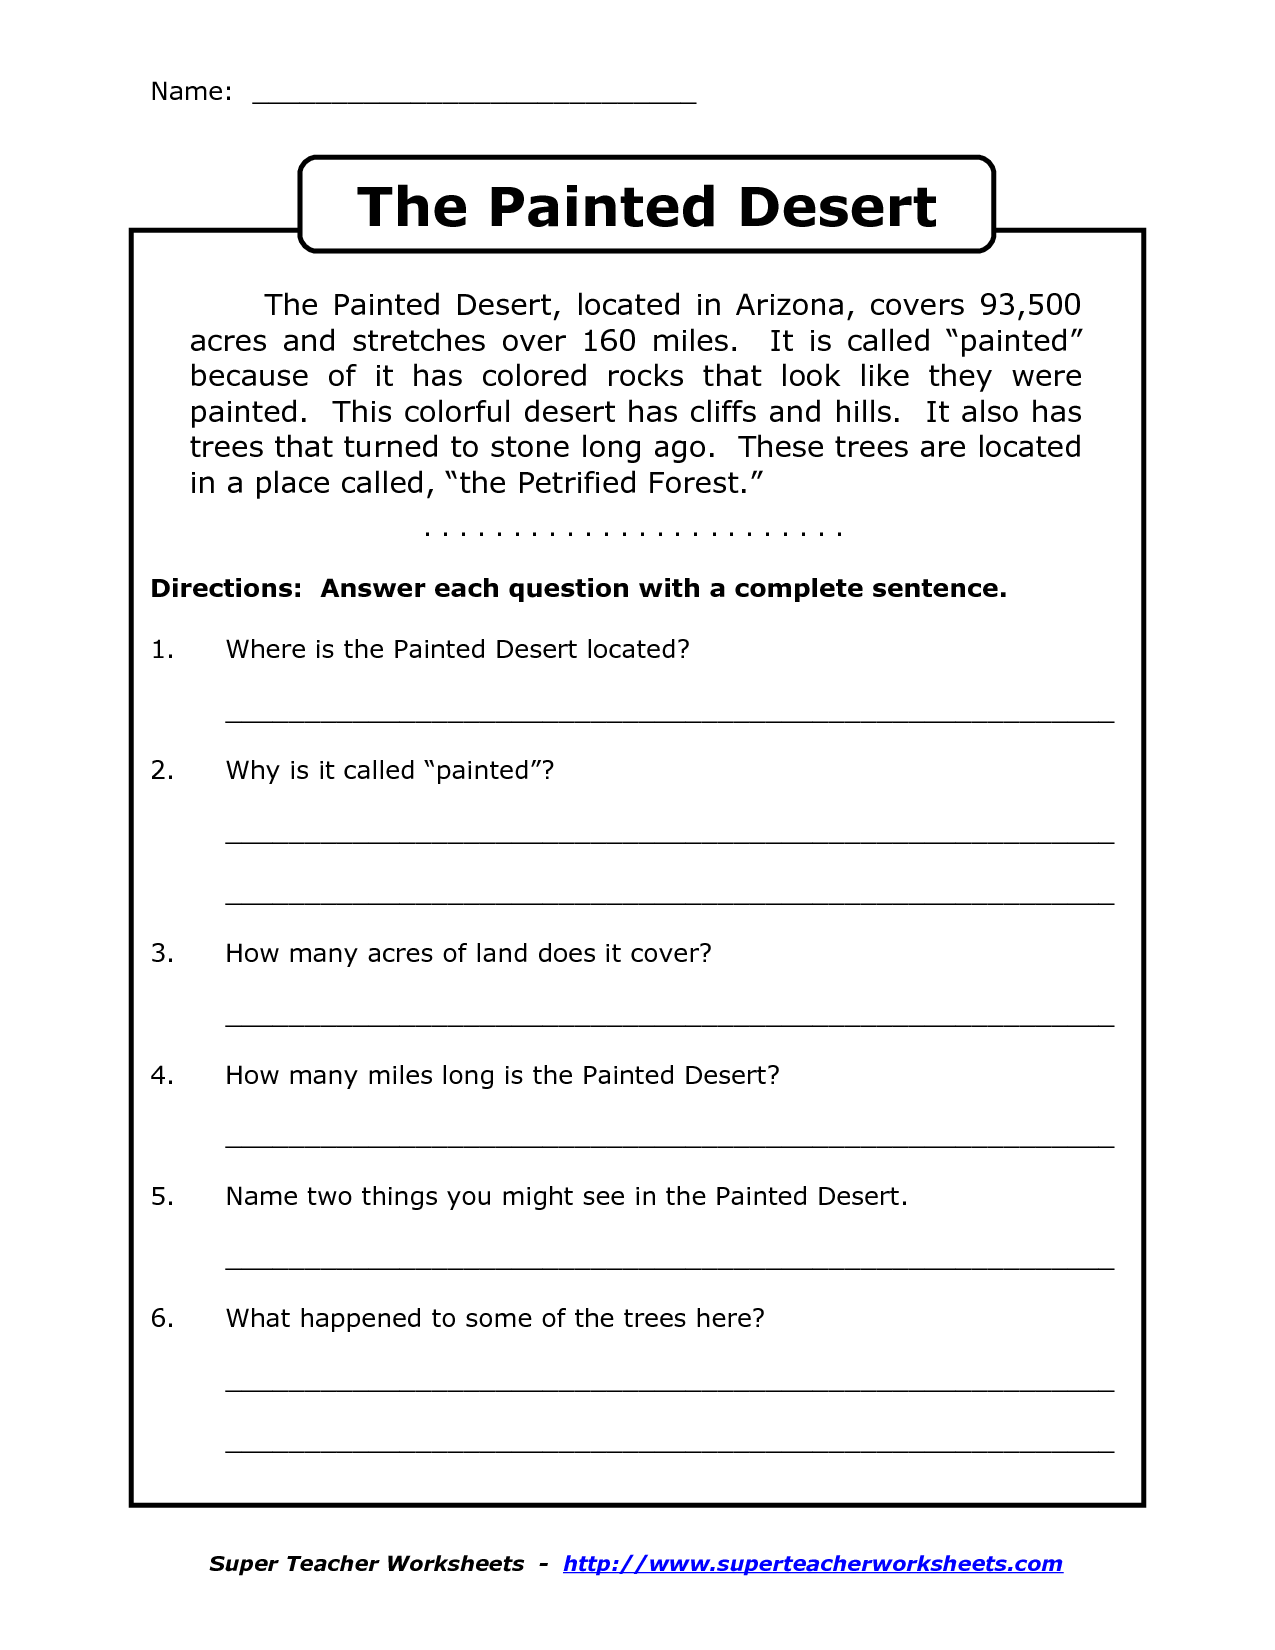 Worksheets Free Printable Reading Comprehension Worksheets For 2nd Grade reading worksheets for 2nd grade hd wallpapers download free tumblr